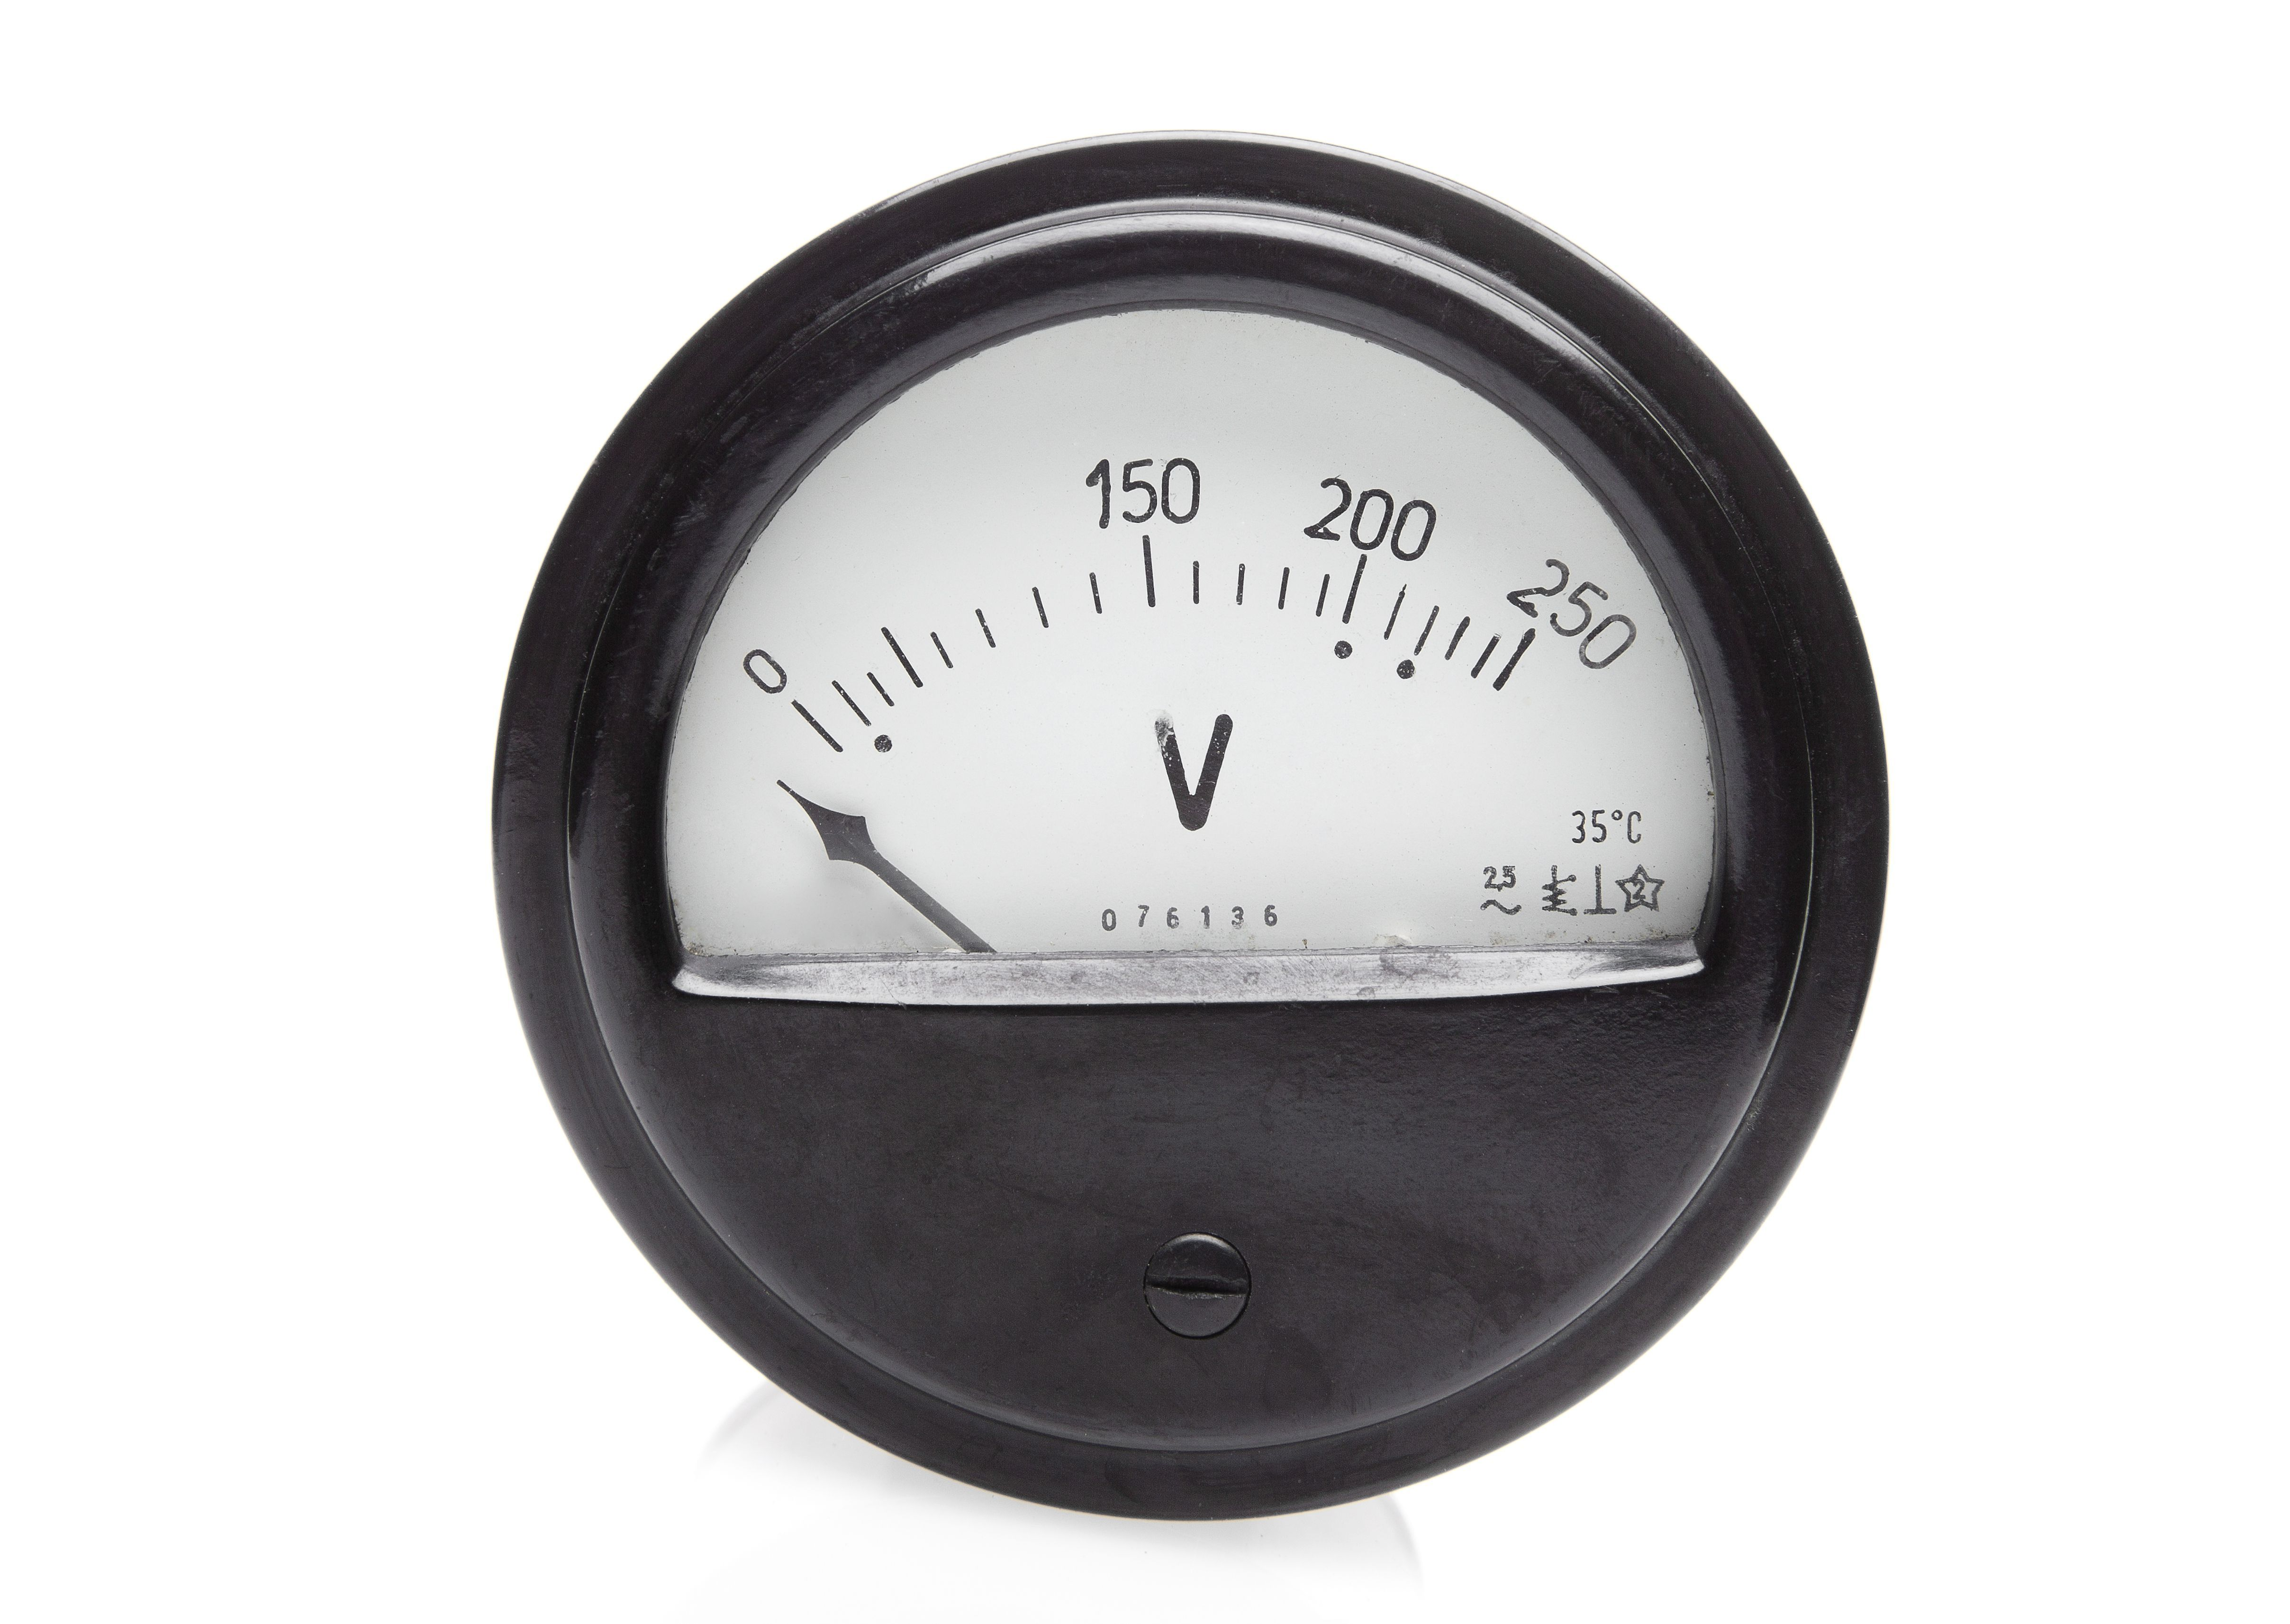 How To Install A Voltmeter On Your Boat Boat Building Build Your Own Boat Boat Plans